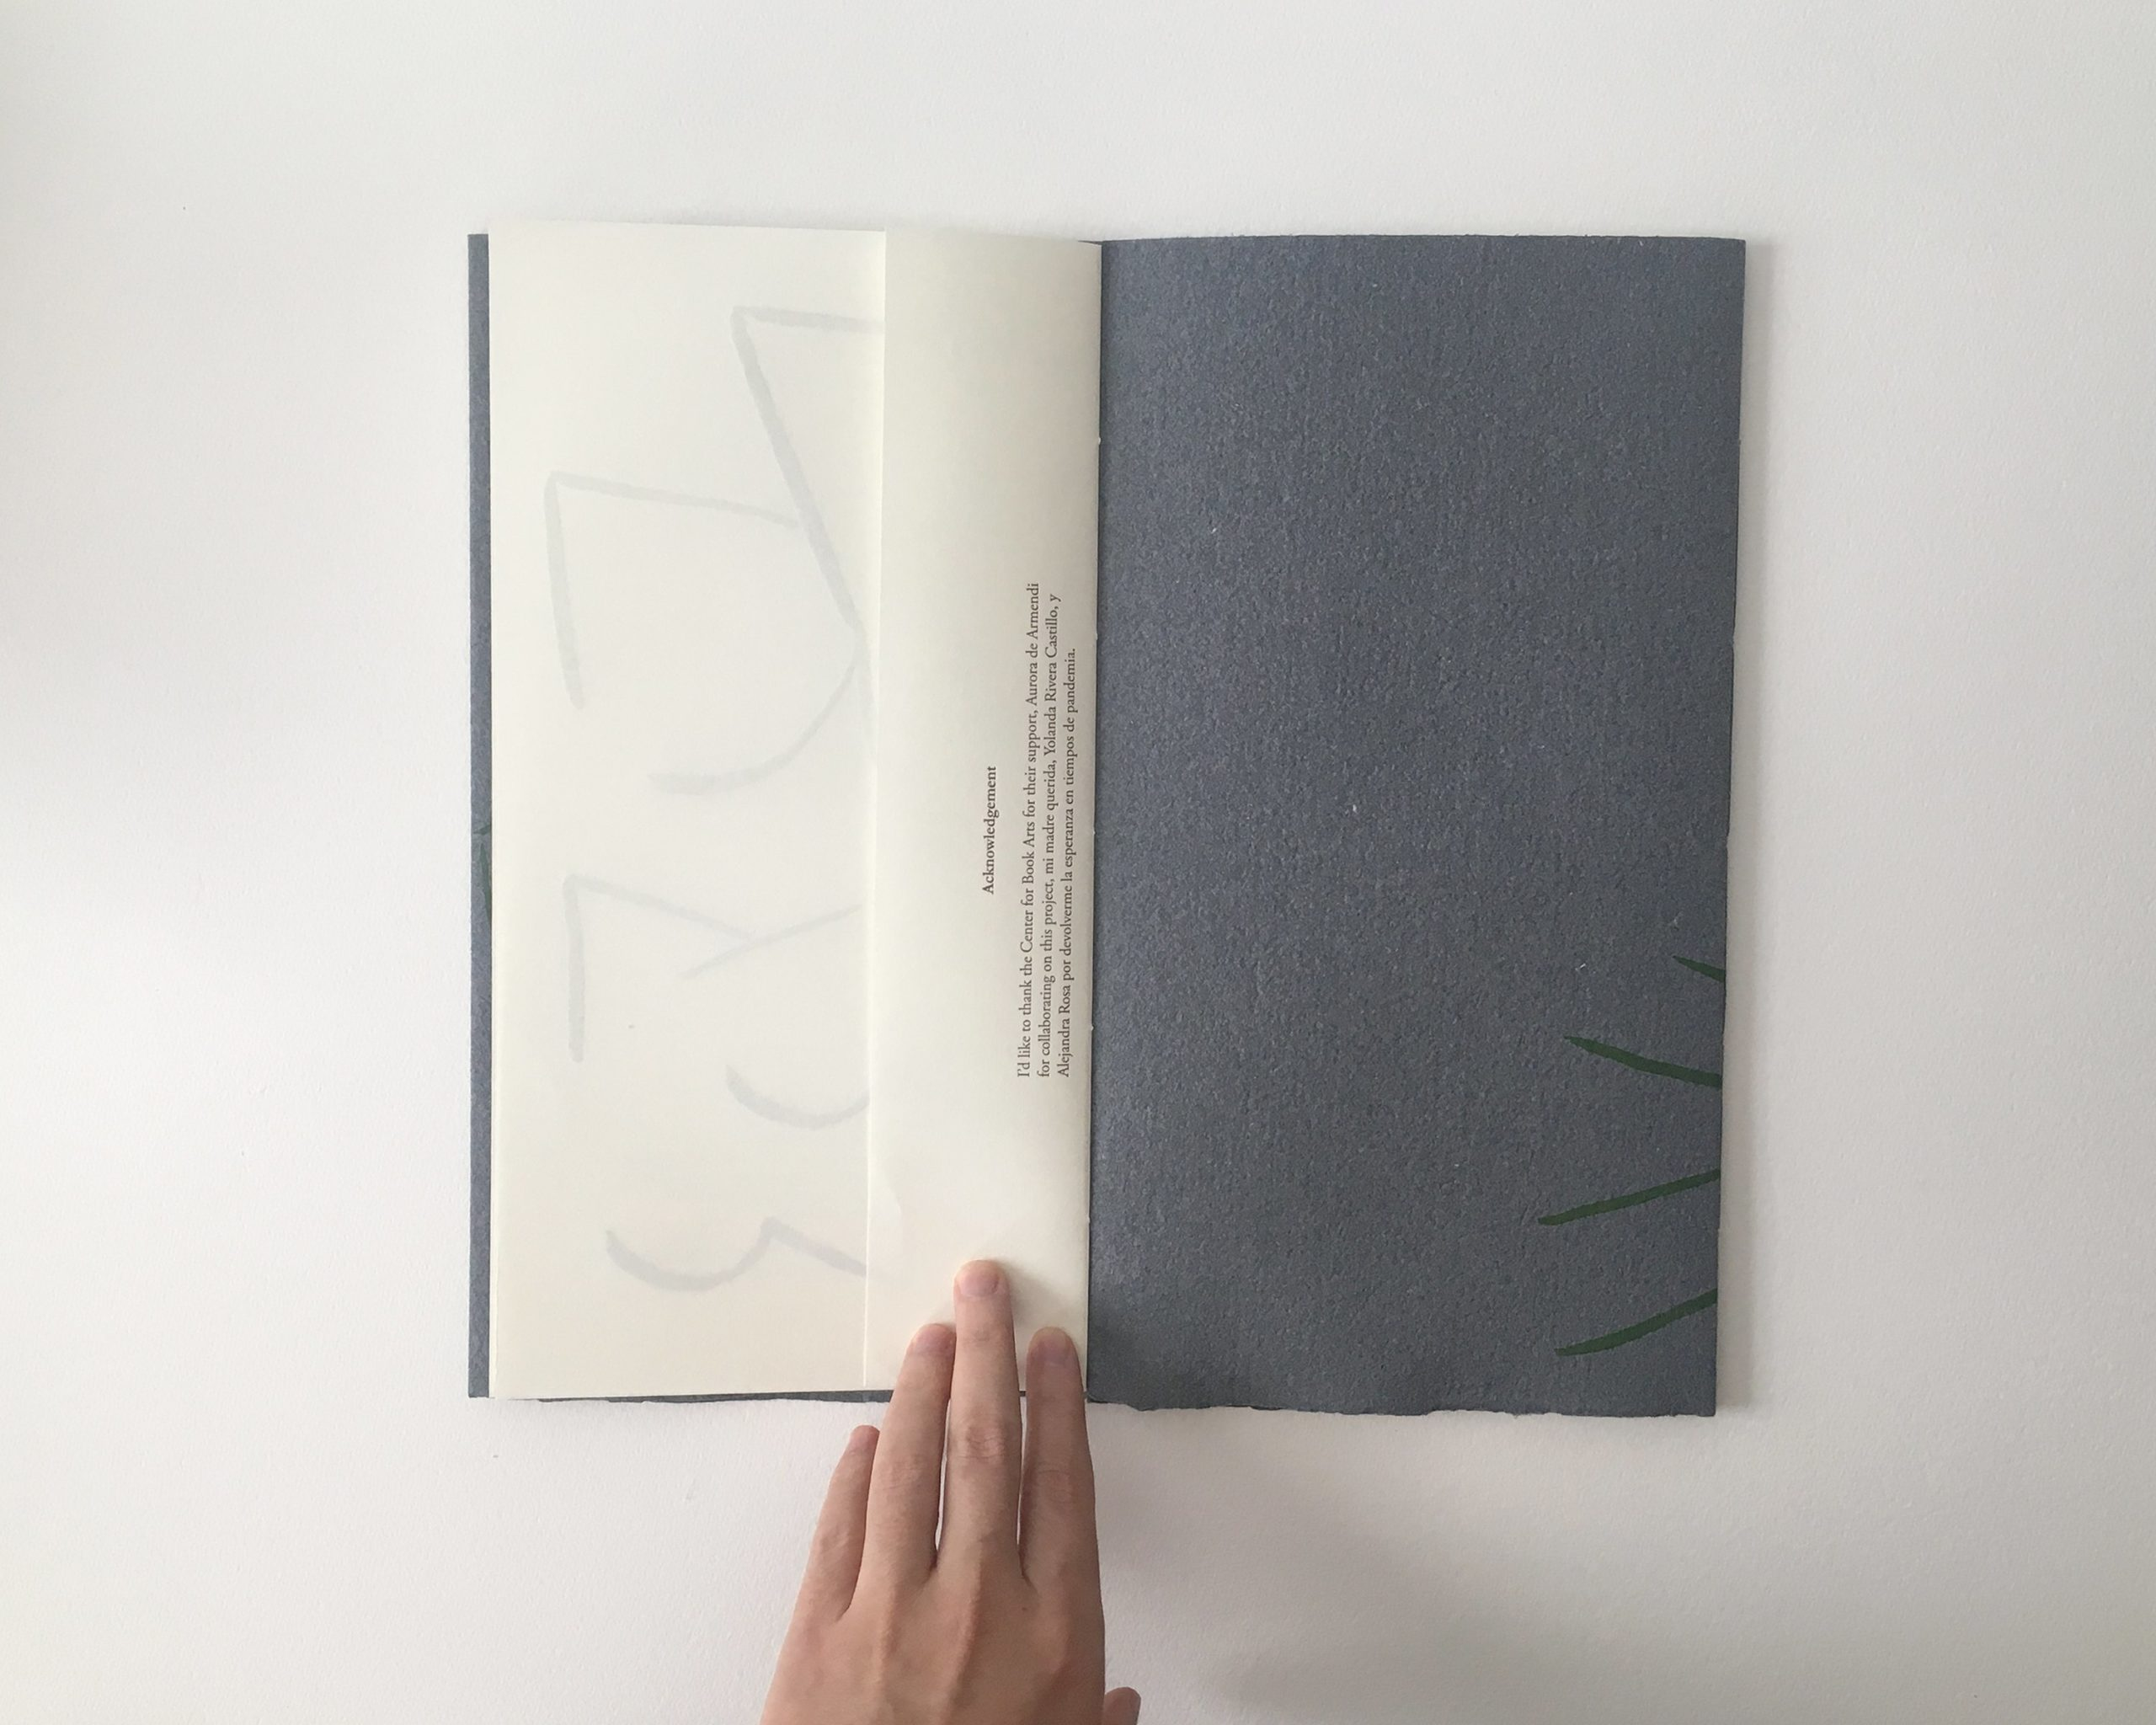 book open to colophon printed on extra short page